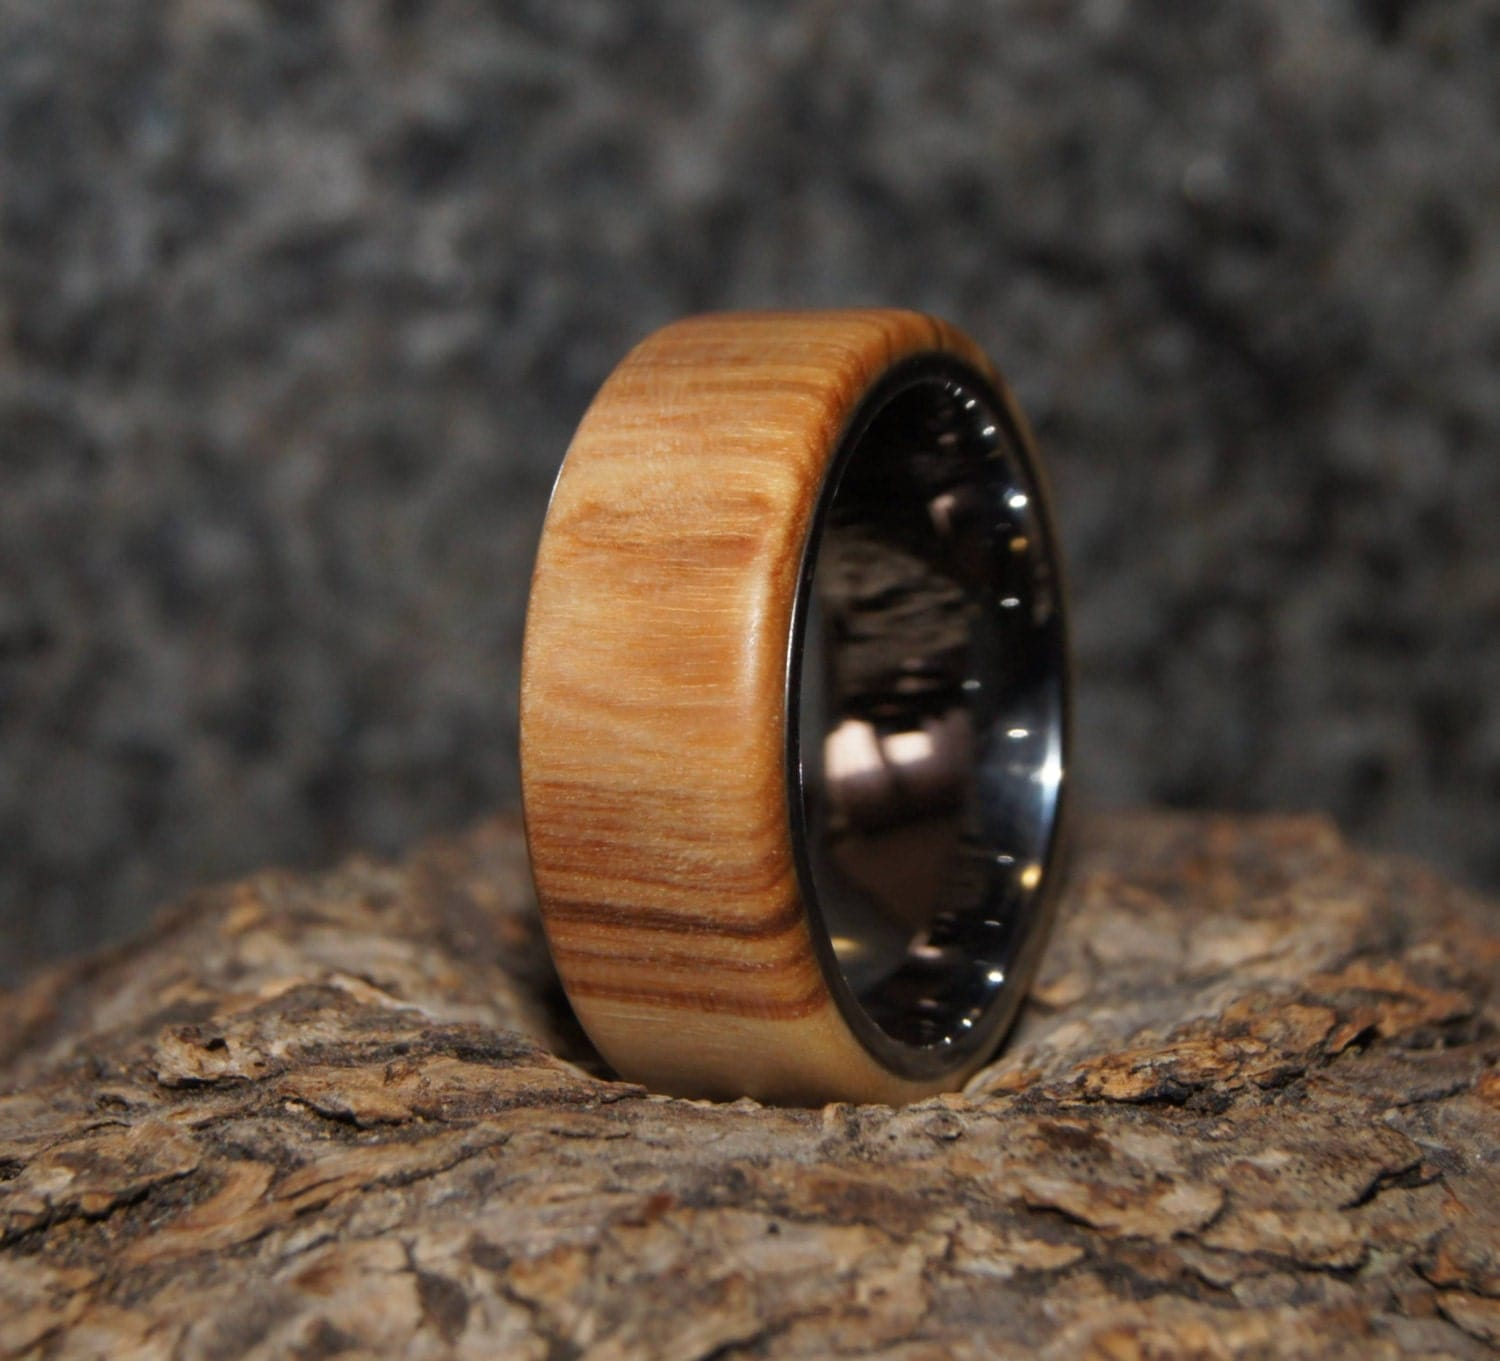 Olive Wood Ring Size 11 Olive Wood And Tungsten Ring. Butterfly Pendant. 18k Gold Watches. Cocktail Ring Sapphire. 2 Carat Diamond Eternity Band. Round Cut Sapphire. 24k Gold Anklet. Female Anklet. Expensive Bracelet